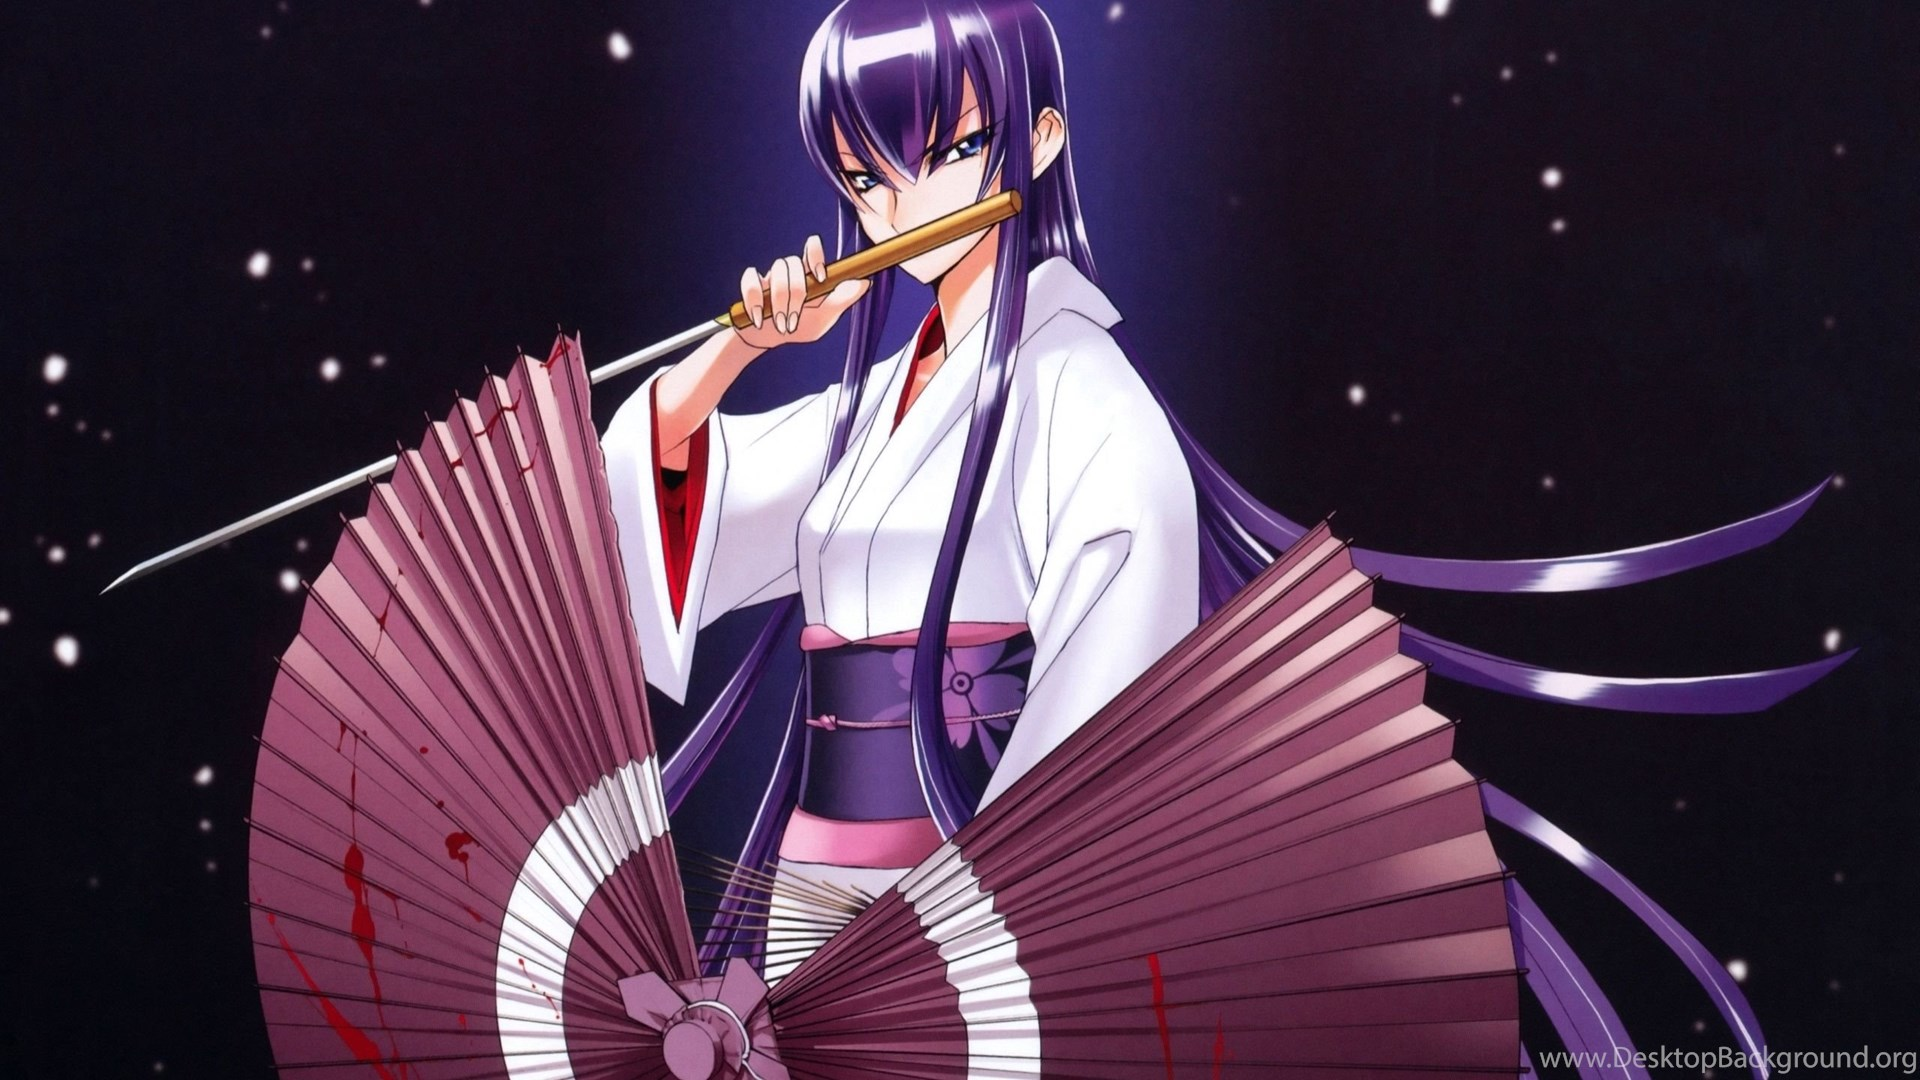 Wallpapers Of Saeko Busujima From High School Of The Dead Imgur